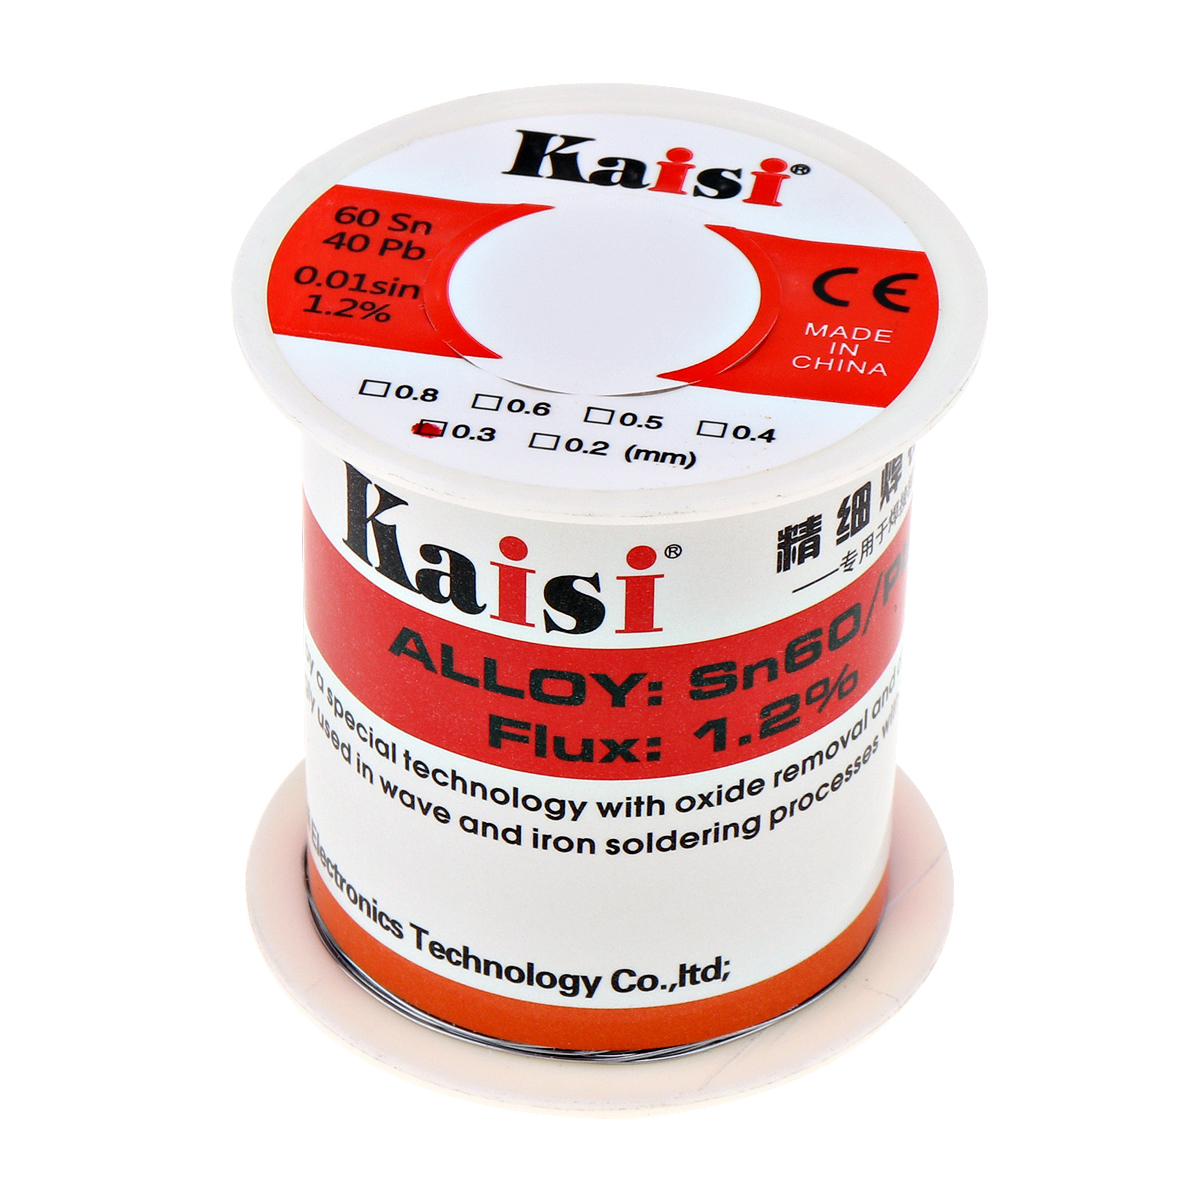 Kaisi 150g Flux 1.2% Rosin Core Tin Lead Solder Wire Sn60 / Pb40 for Welding Works (0.3mm / 0.4mm / 0.5mm / 0.6mm Optional)